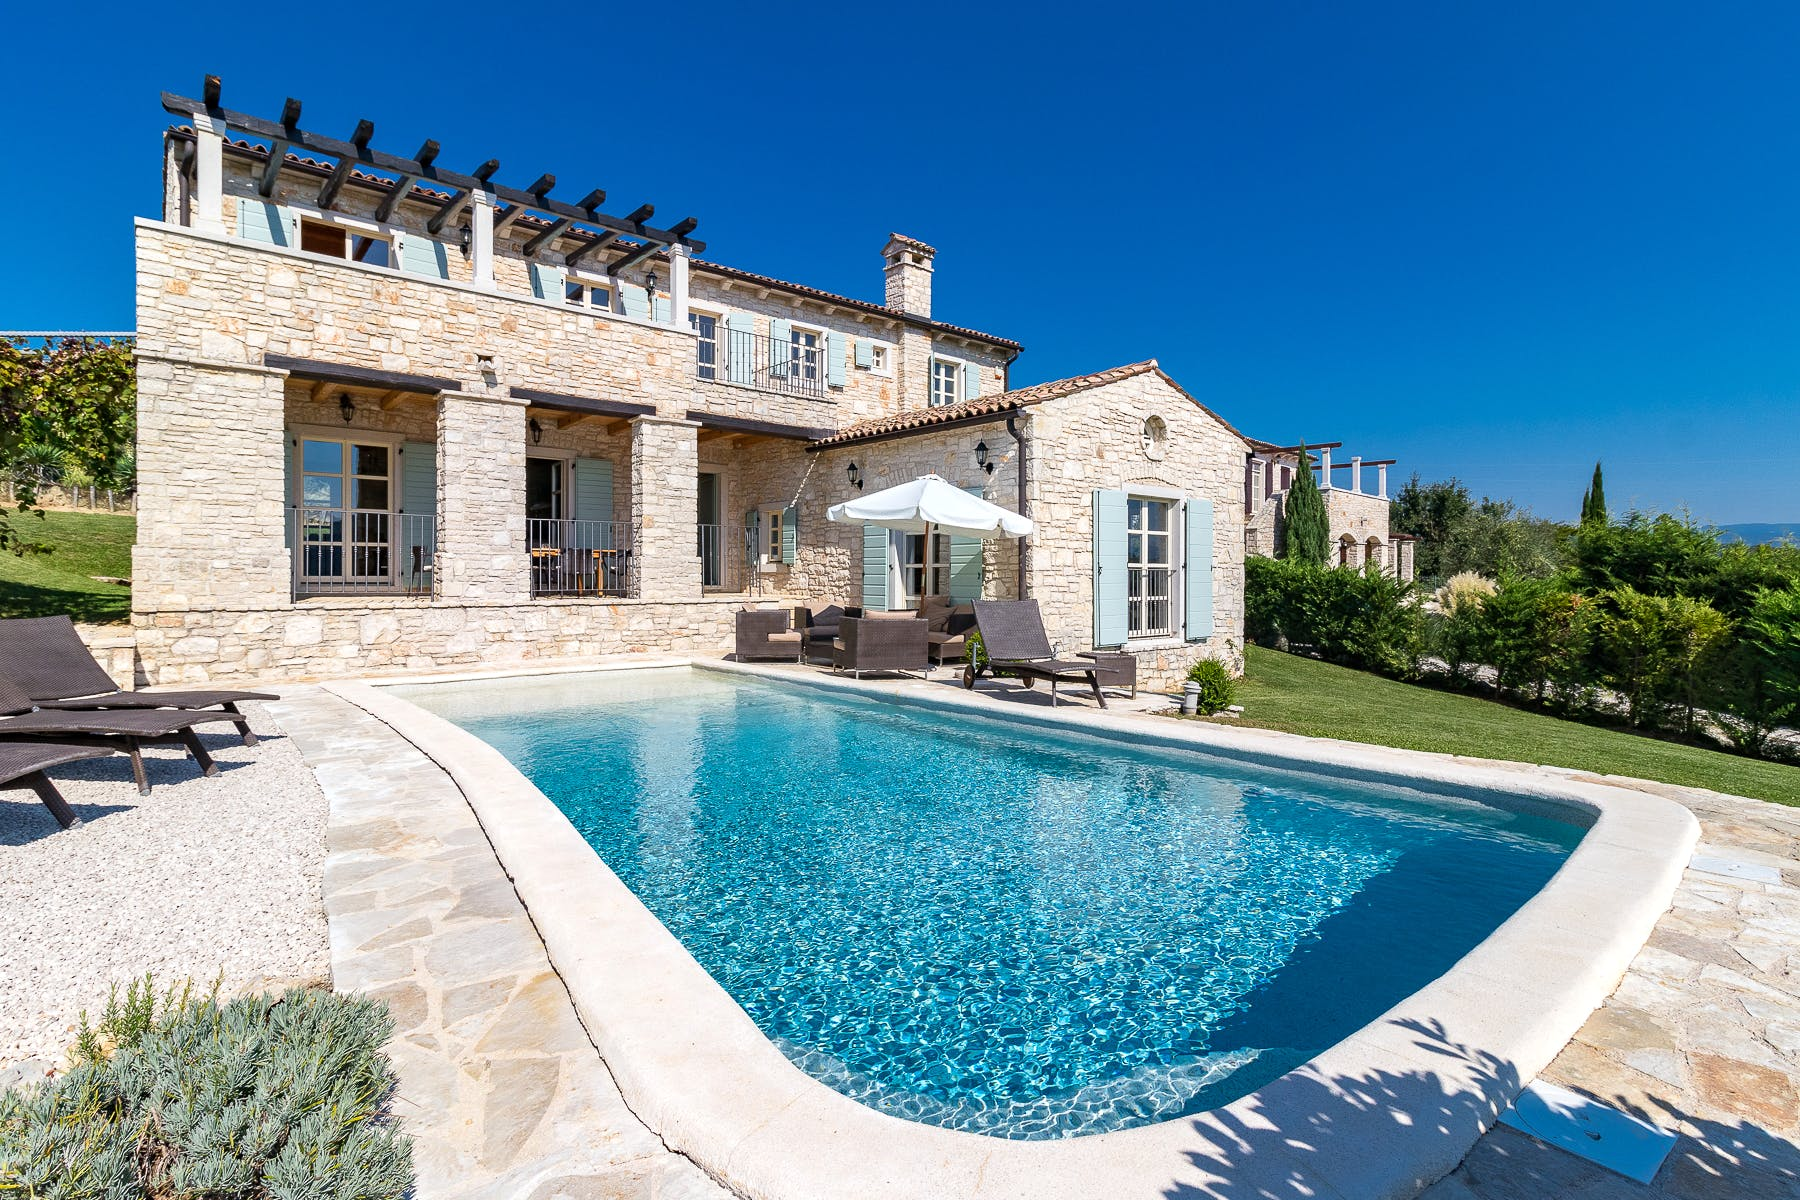 Stone property with a pool